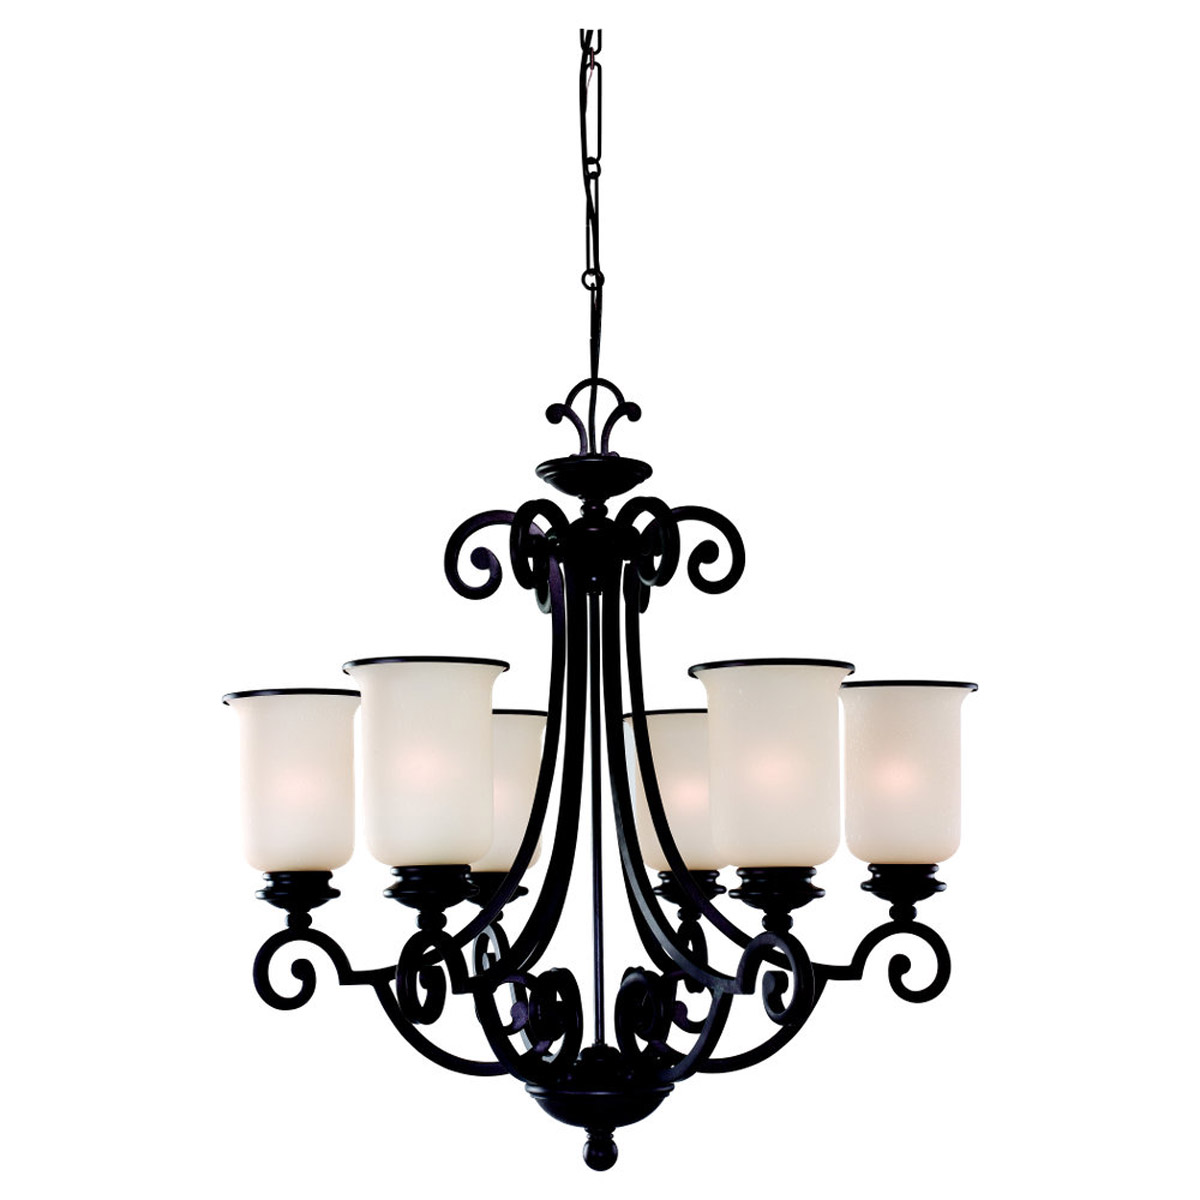 Sea Gull Lighting Acadia 6 Light Chandelier in Misted Bronze 31146BLE-814 photo